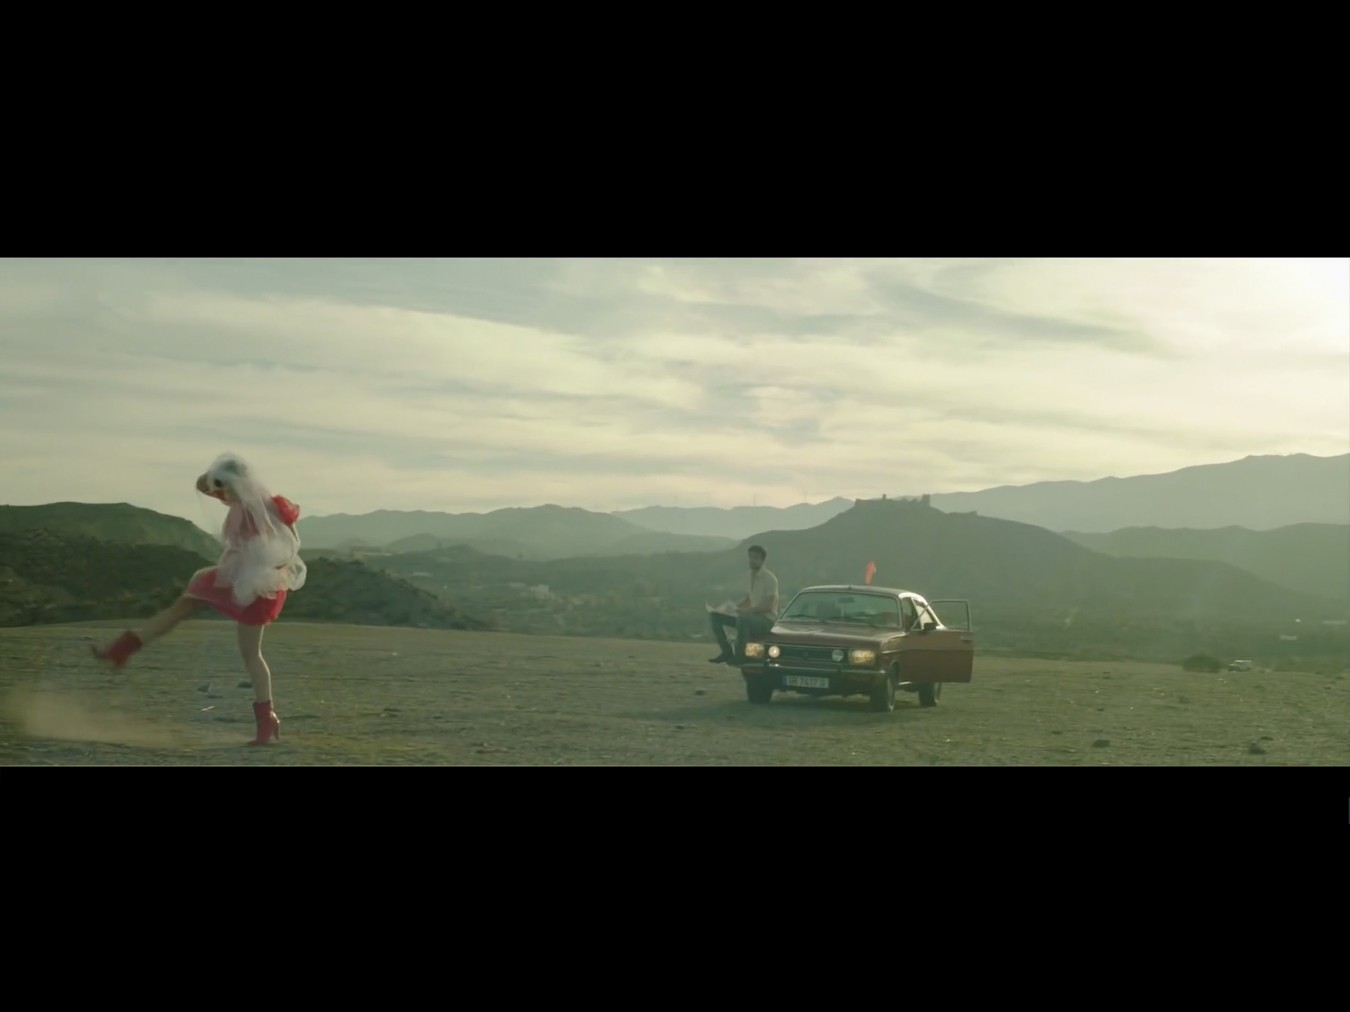 Sony Music_Hooverphonic/Boomerang Music Video, Agency: TRS, Director: Jan Boon, DOP: Anton Mertens